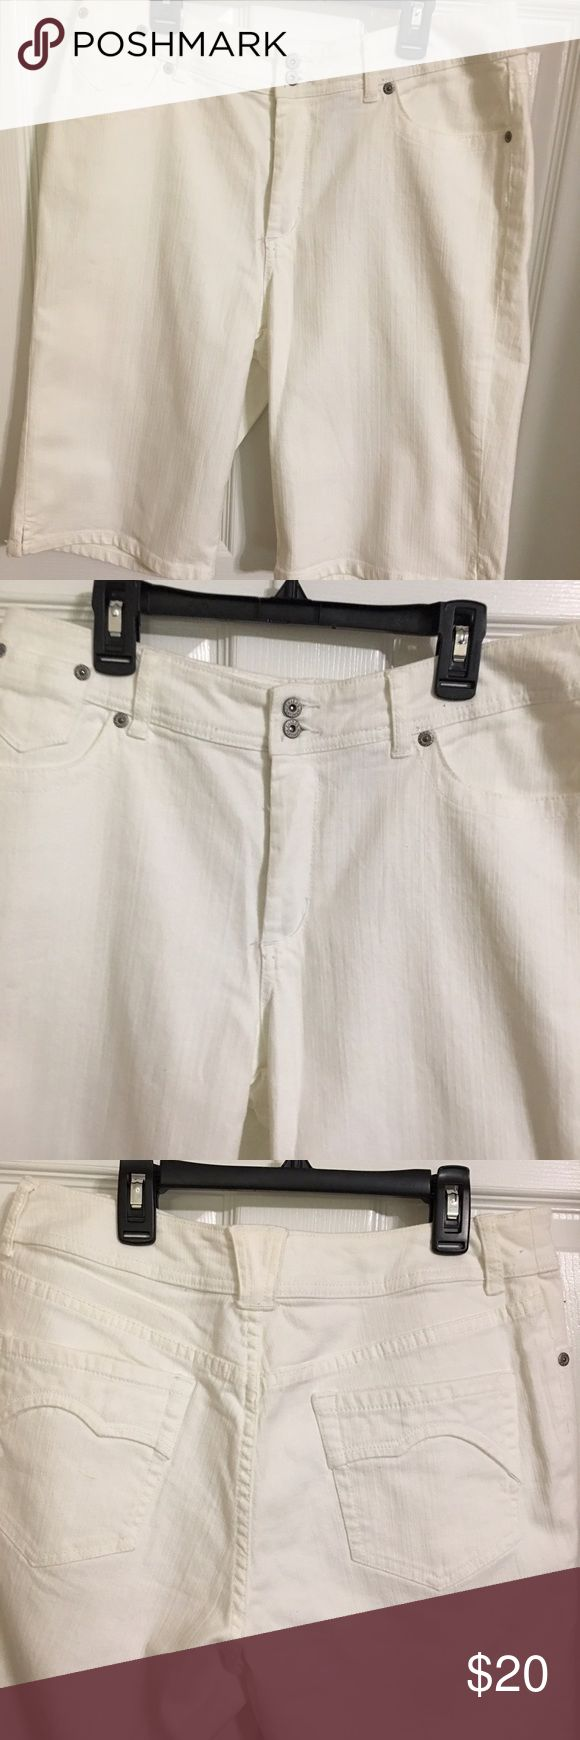 Chico's White Jean Shorts Chico's ladies White jean shorts size 1.5 equal to size medium or a 10. NWOT Chico's Shorts Jean Shorts